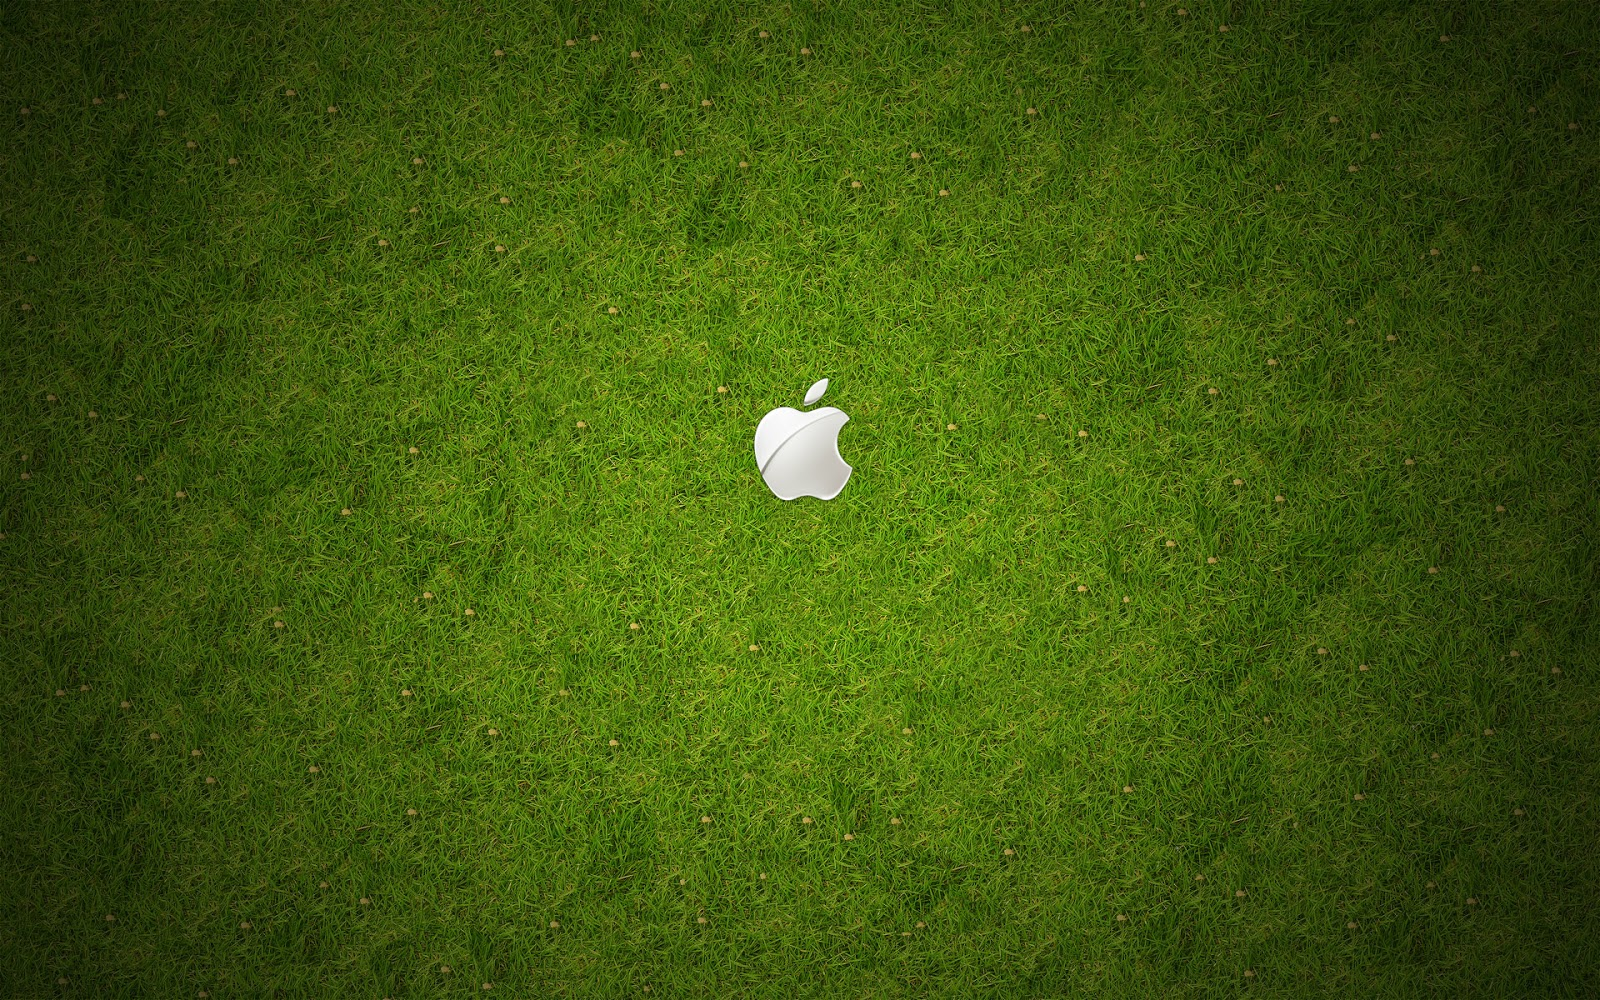 Apple Mac Wallpapers Hd: Free Apple Mac New Ipad Wallpaper HD